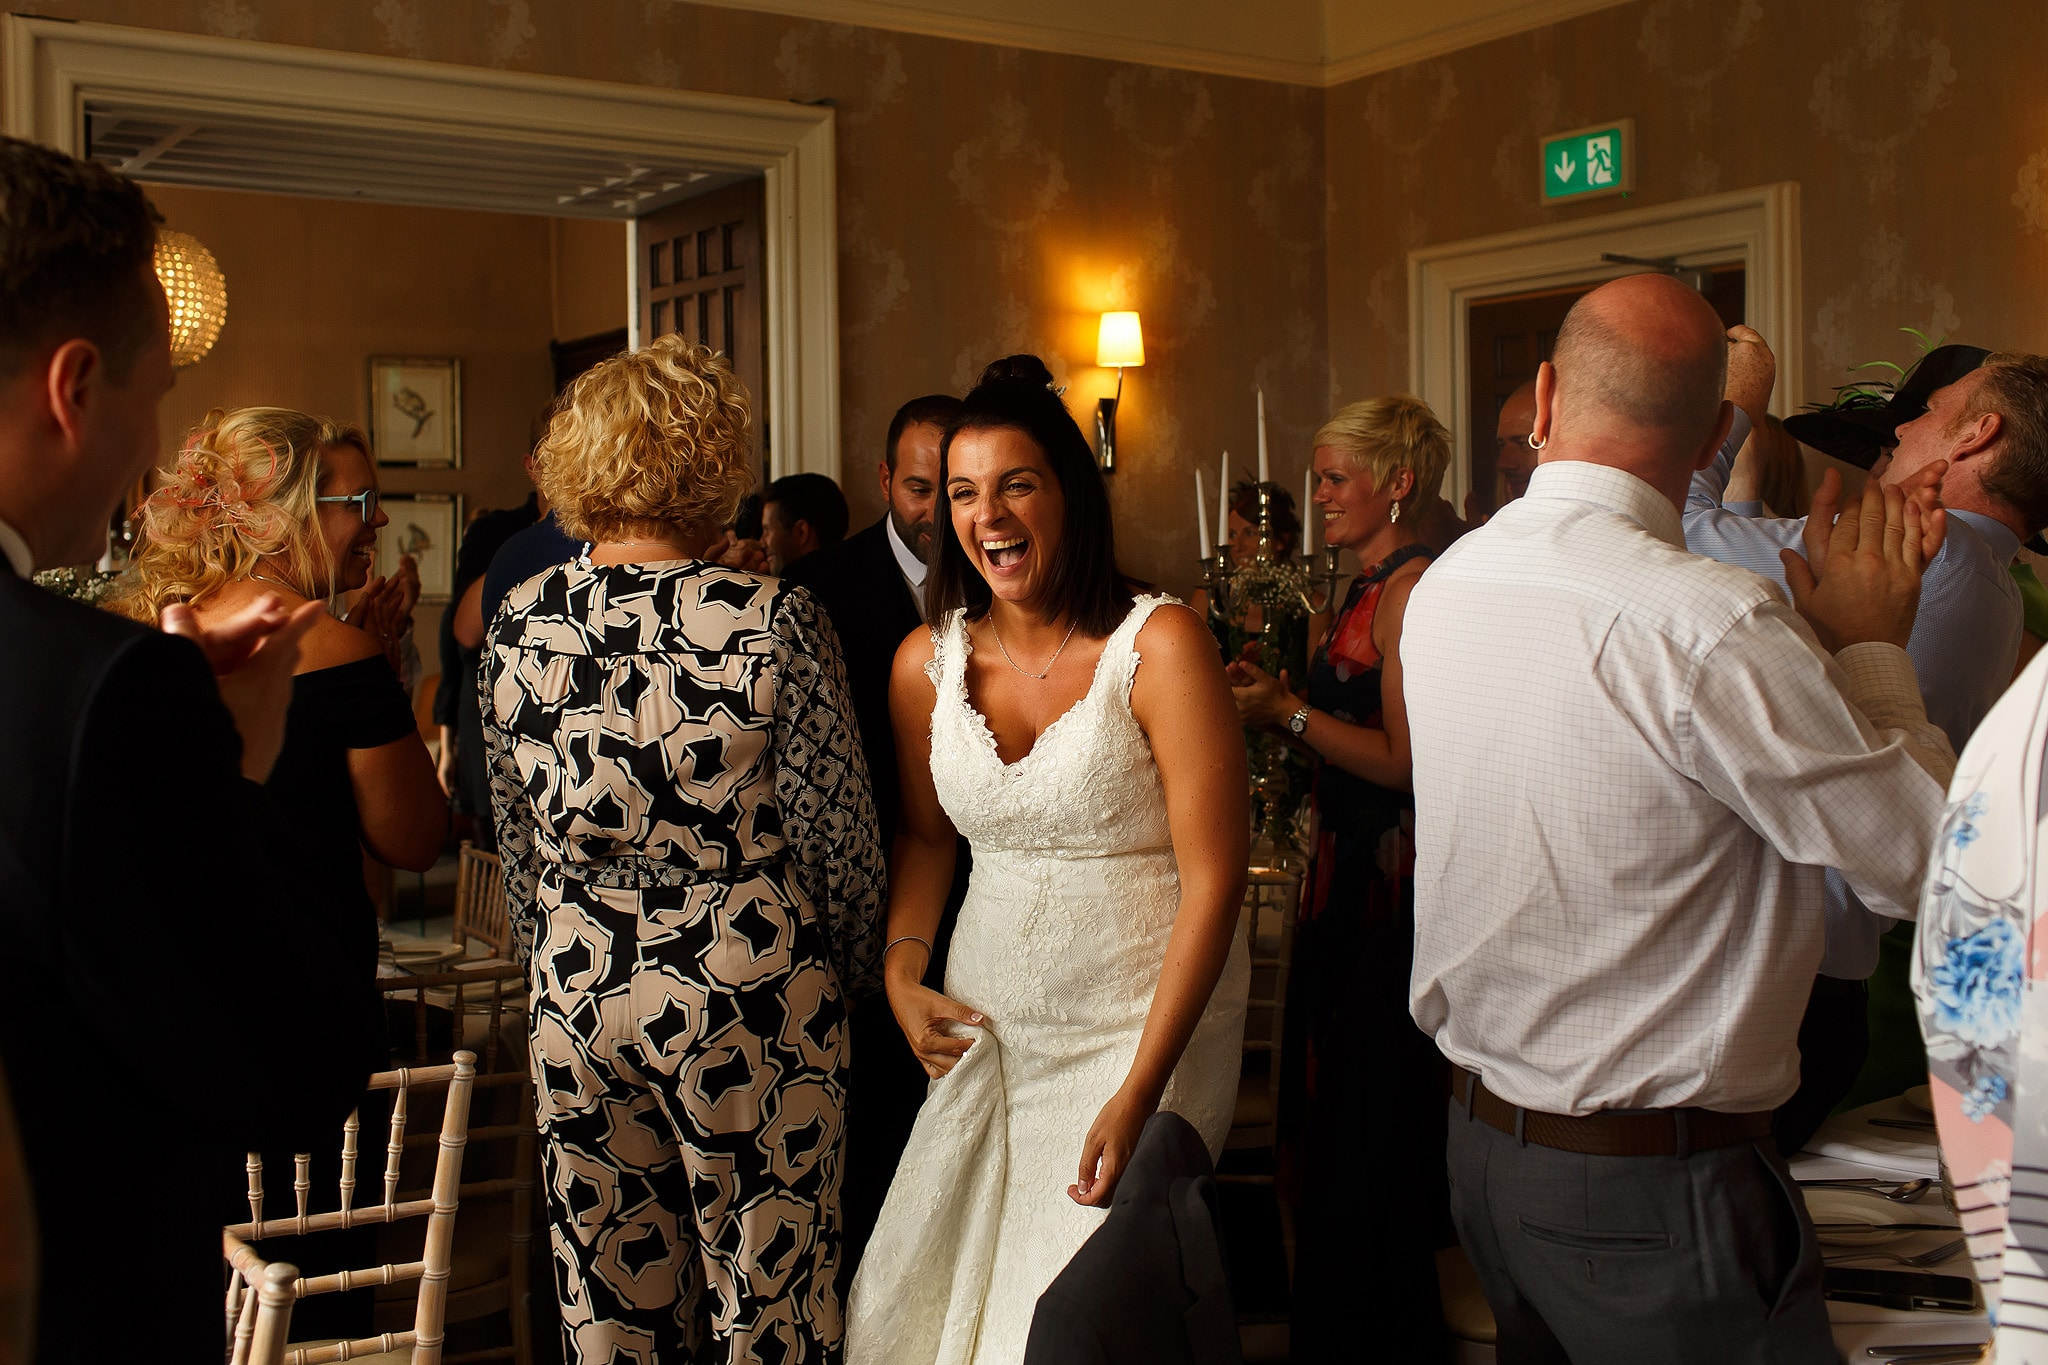 Guests laughing during the wedding reception at Falcon Manor